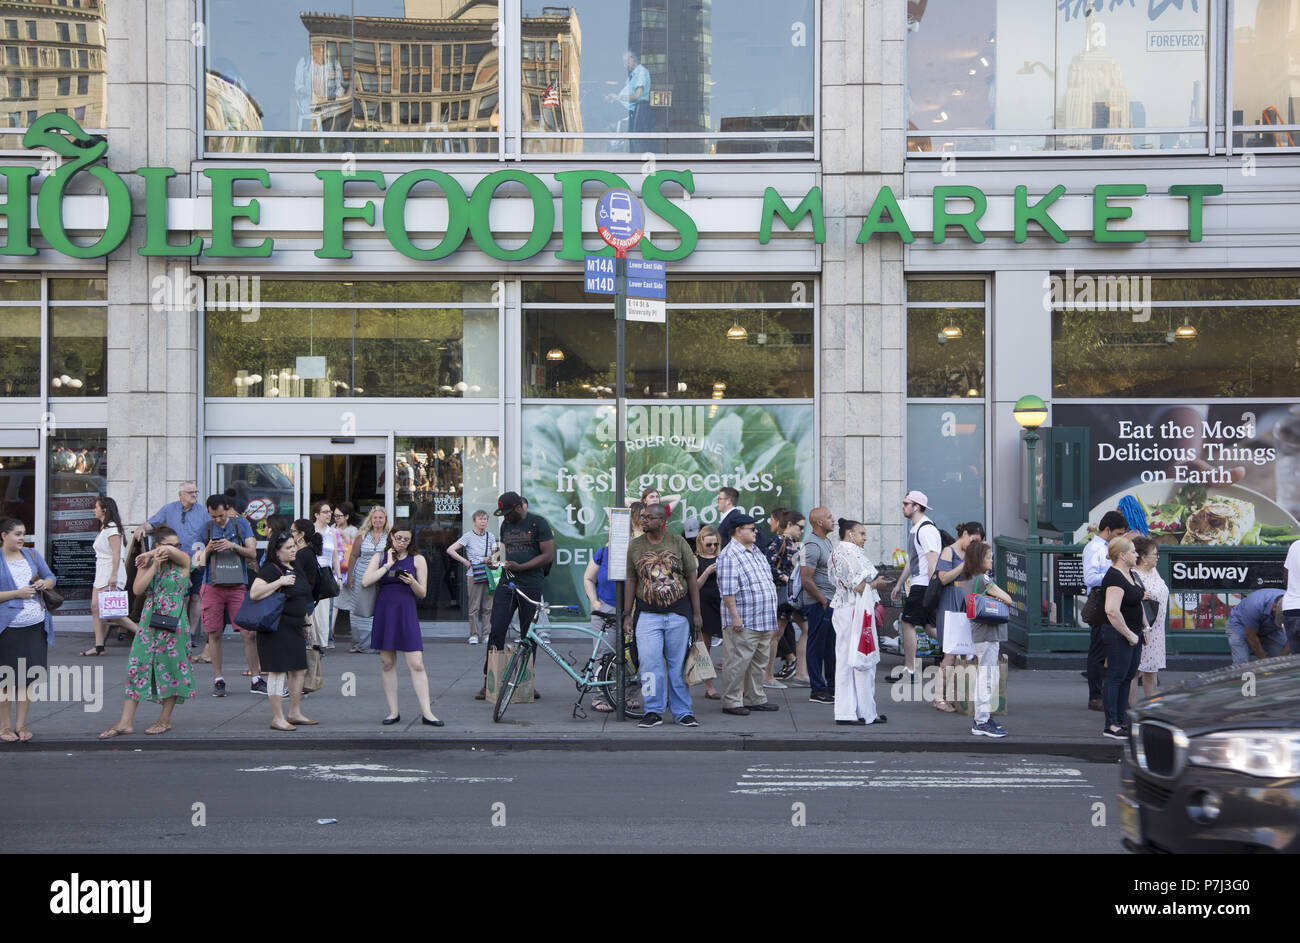 People wait for the cross town bus on 14th Street in front of the Whole Foods Market across the street from Union Square. New York City. - Stock Image